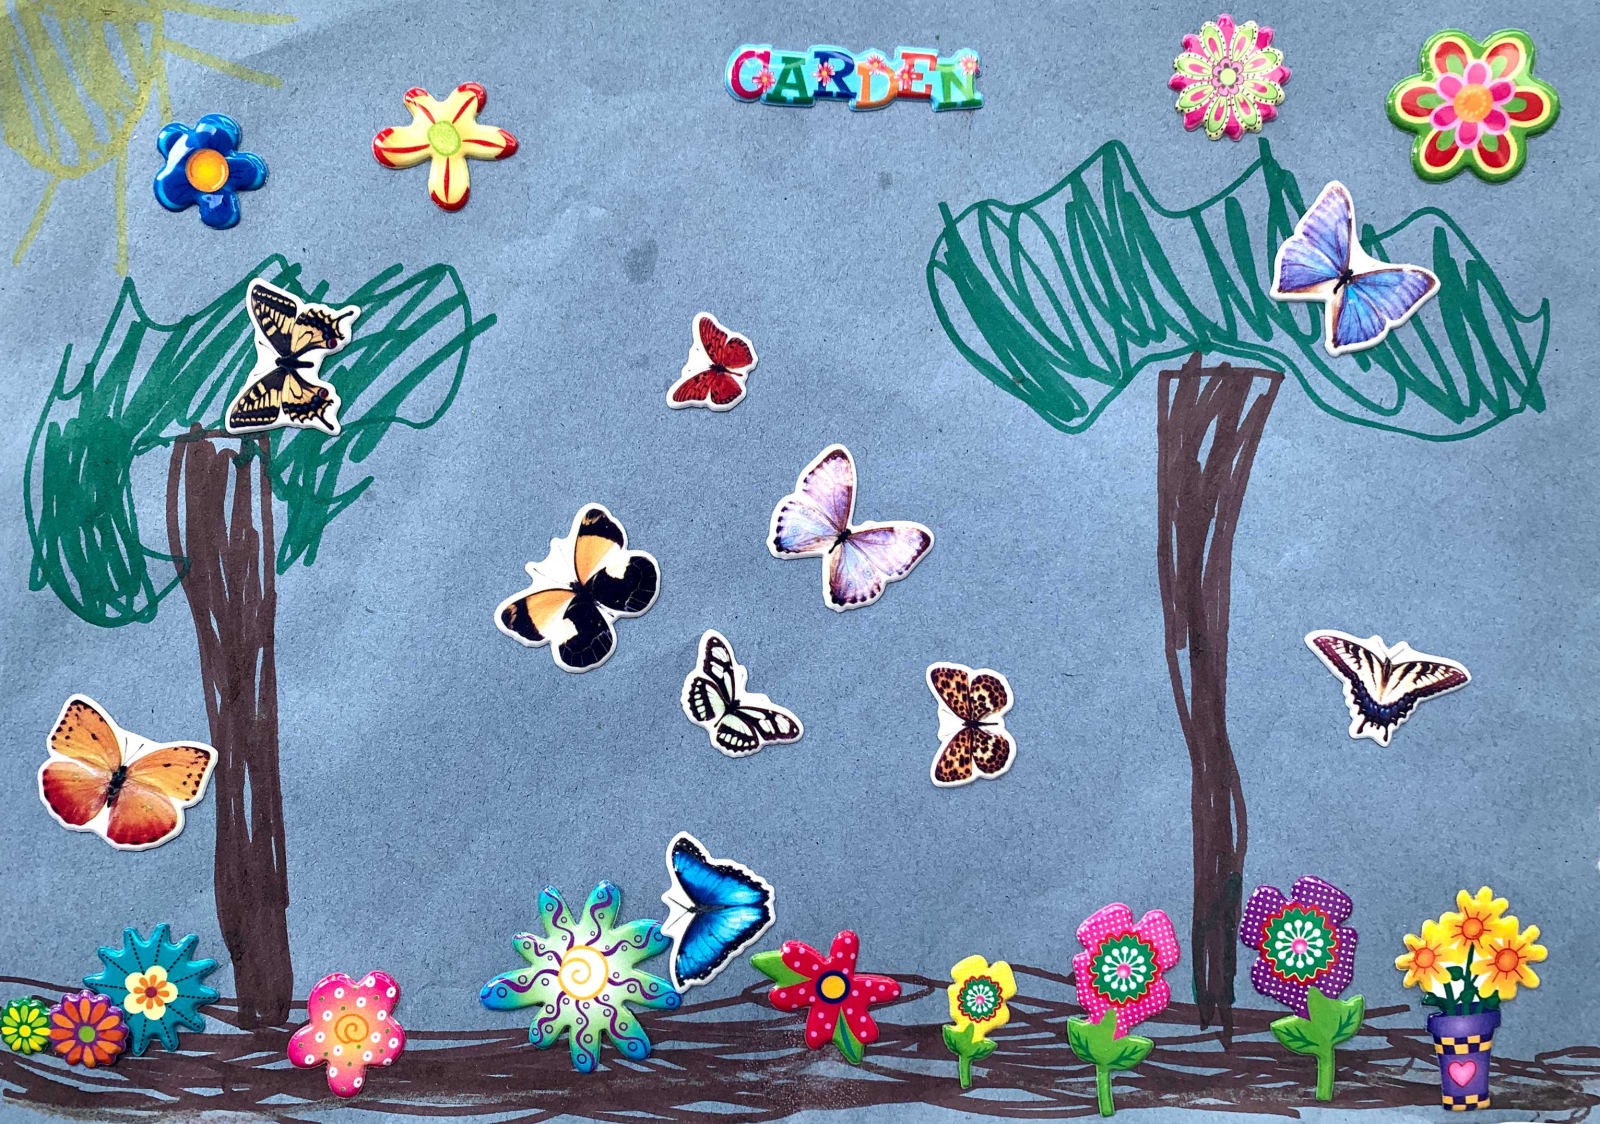 Romilly French, Age 6, Garden